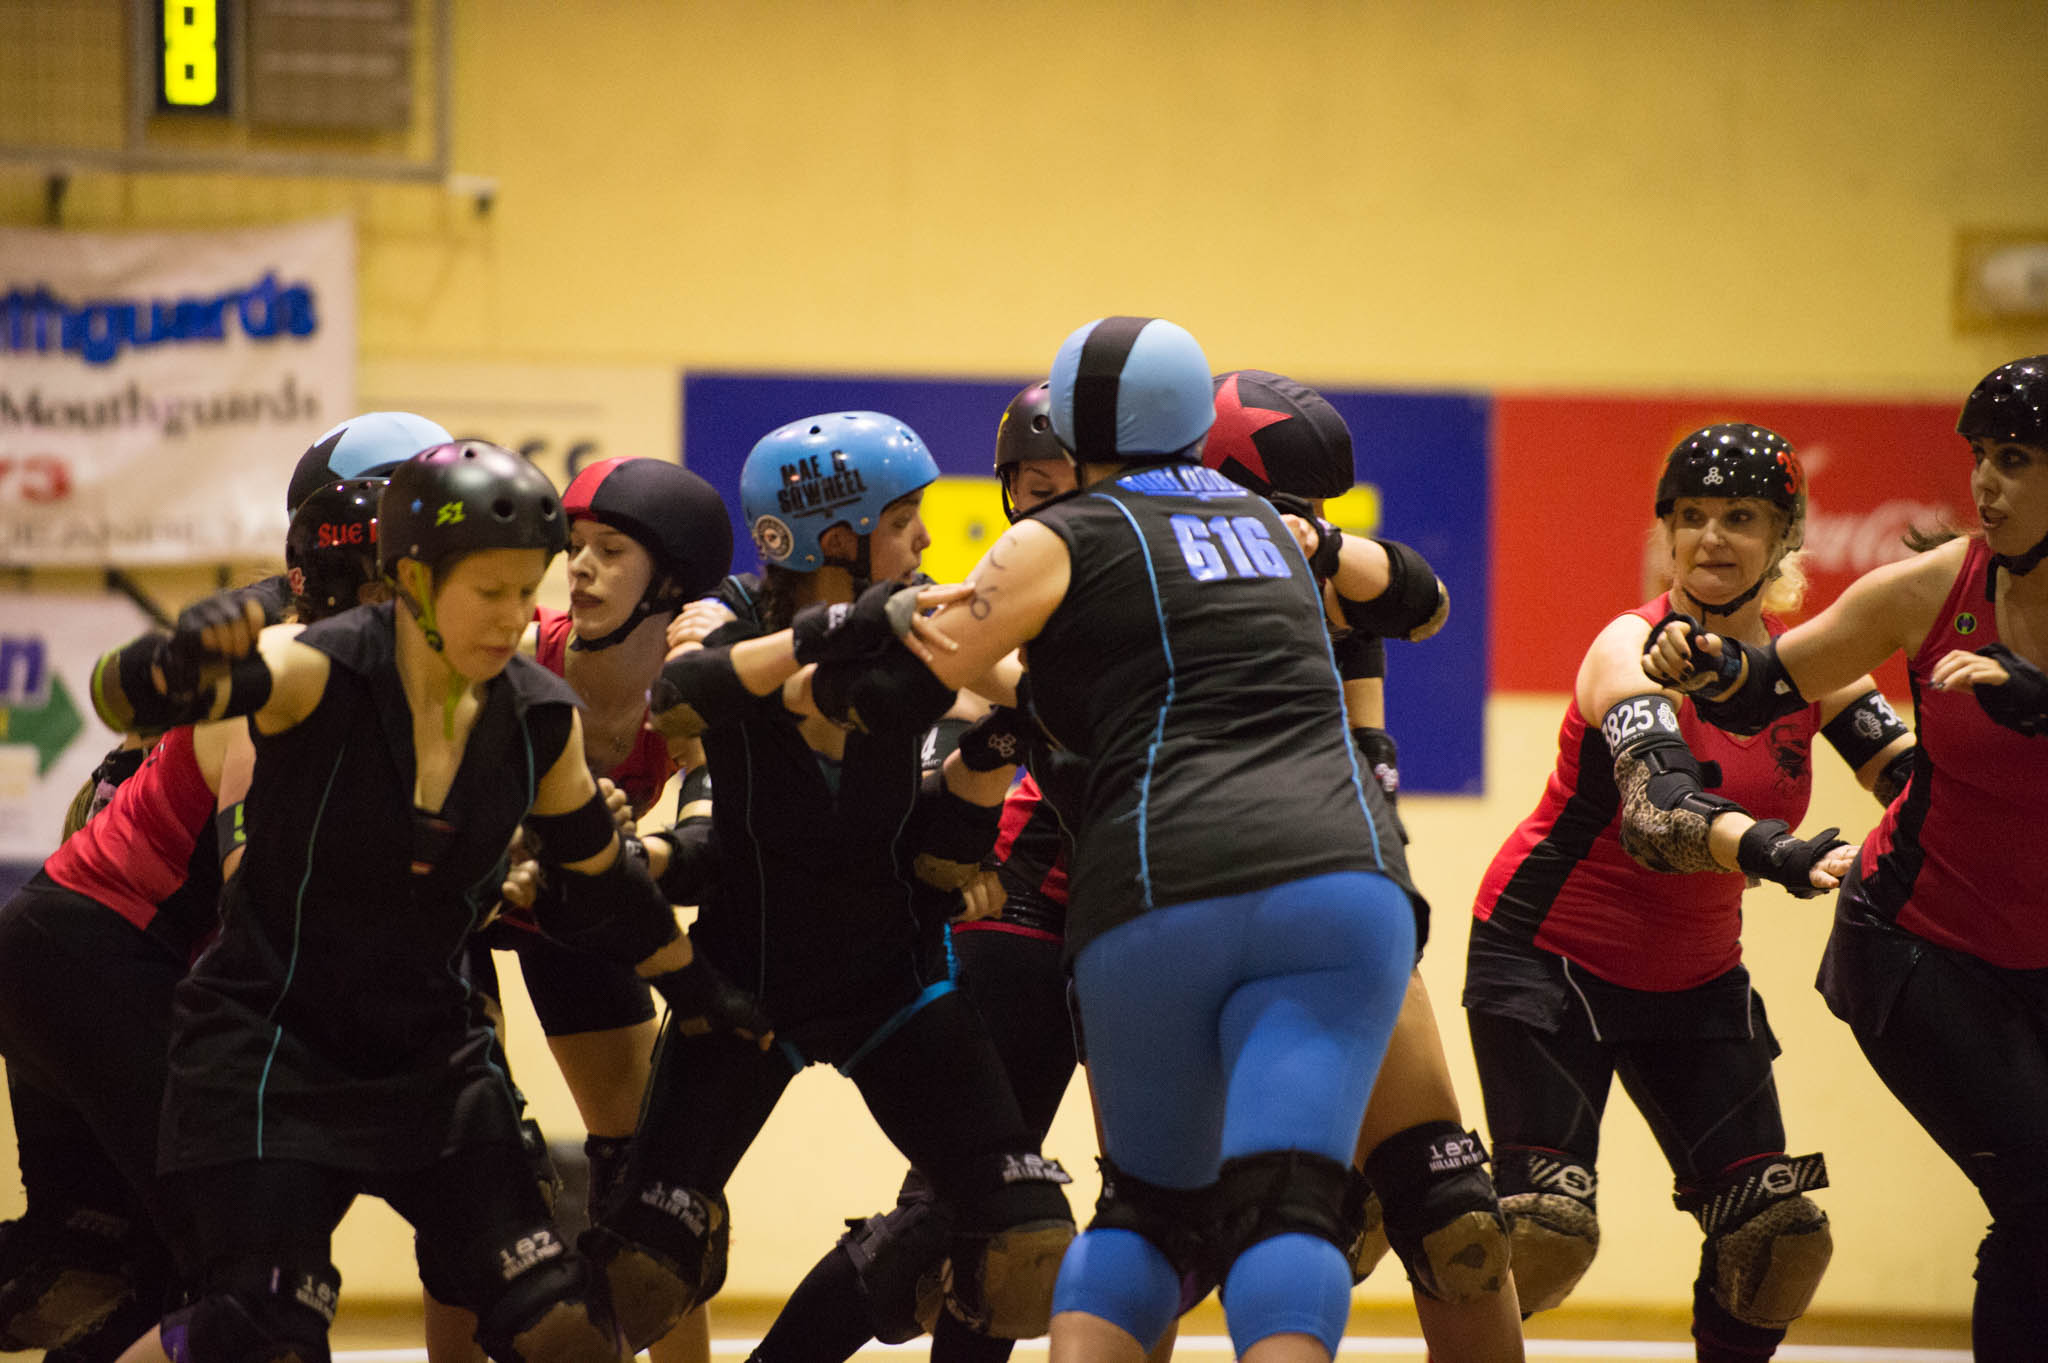 CRDL - Black 'n' Blue Belles v Red Bellied Black Hearts